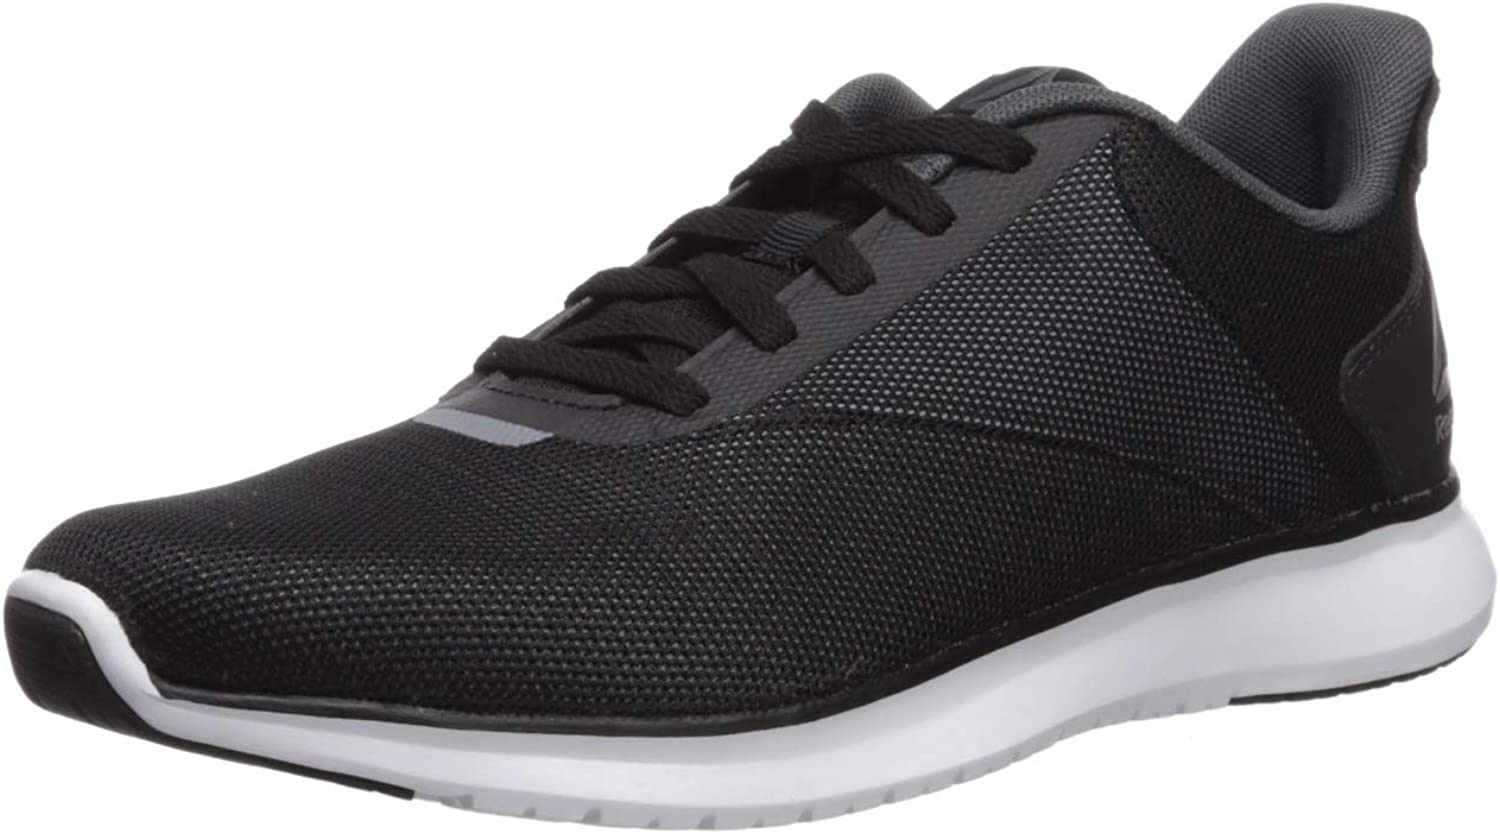 Reebok Womens Instalite Lux Running shoes